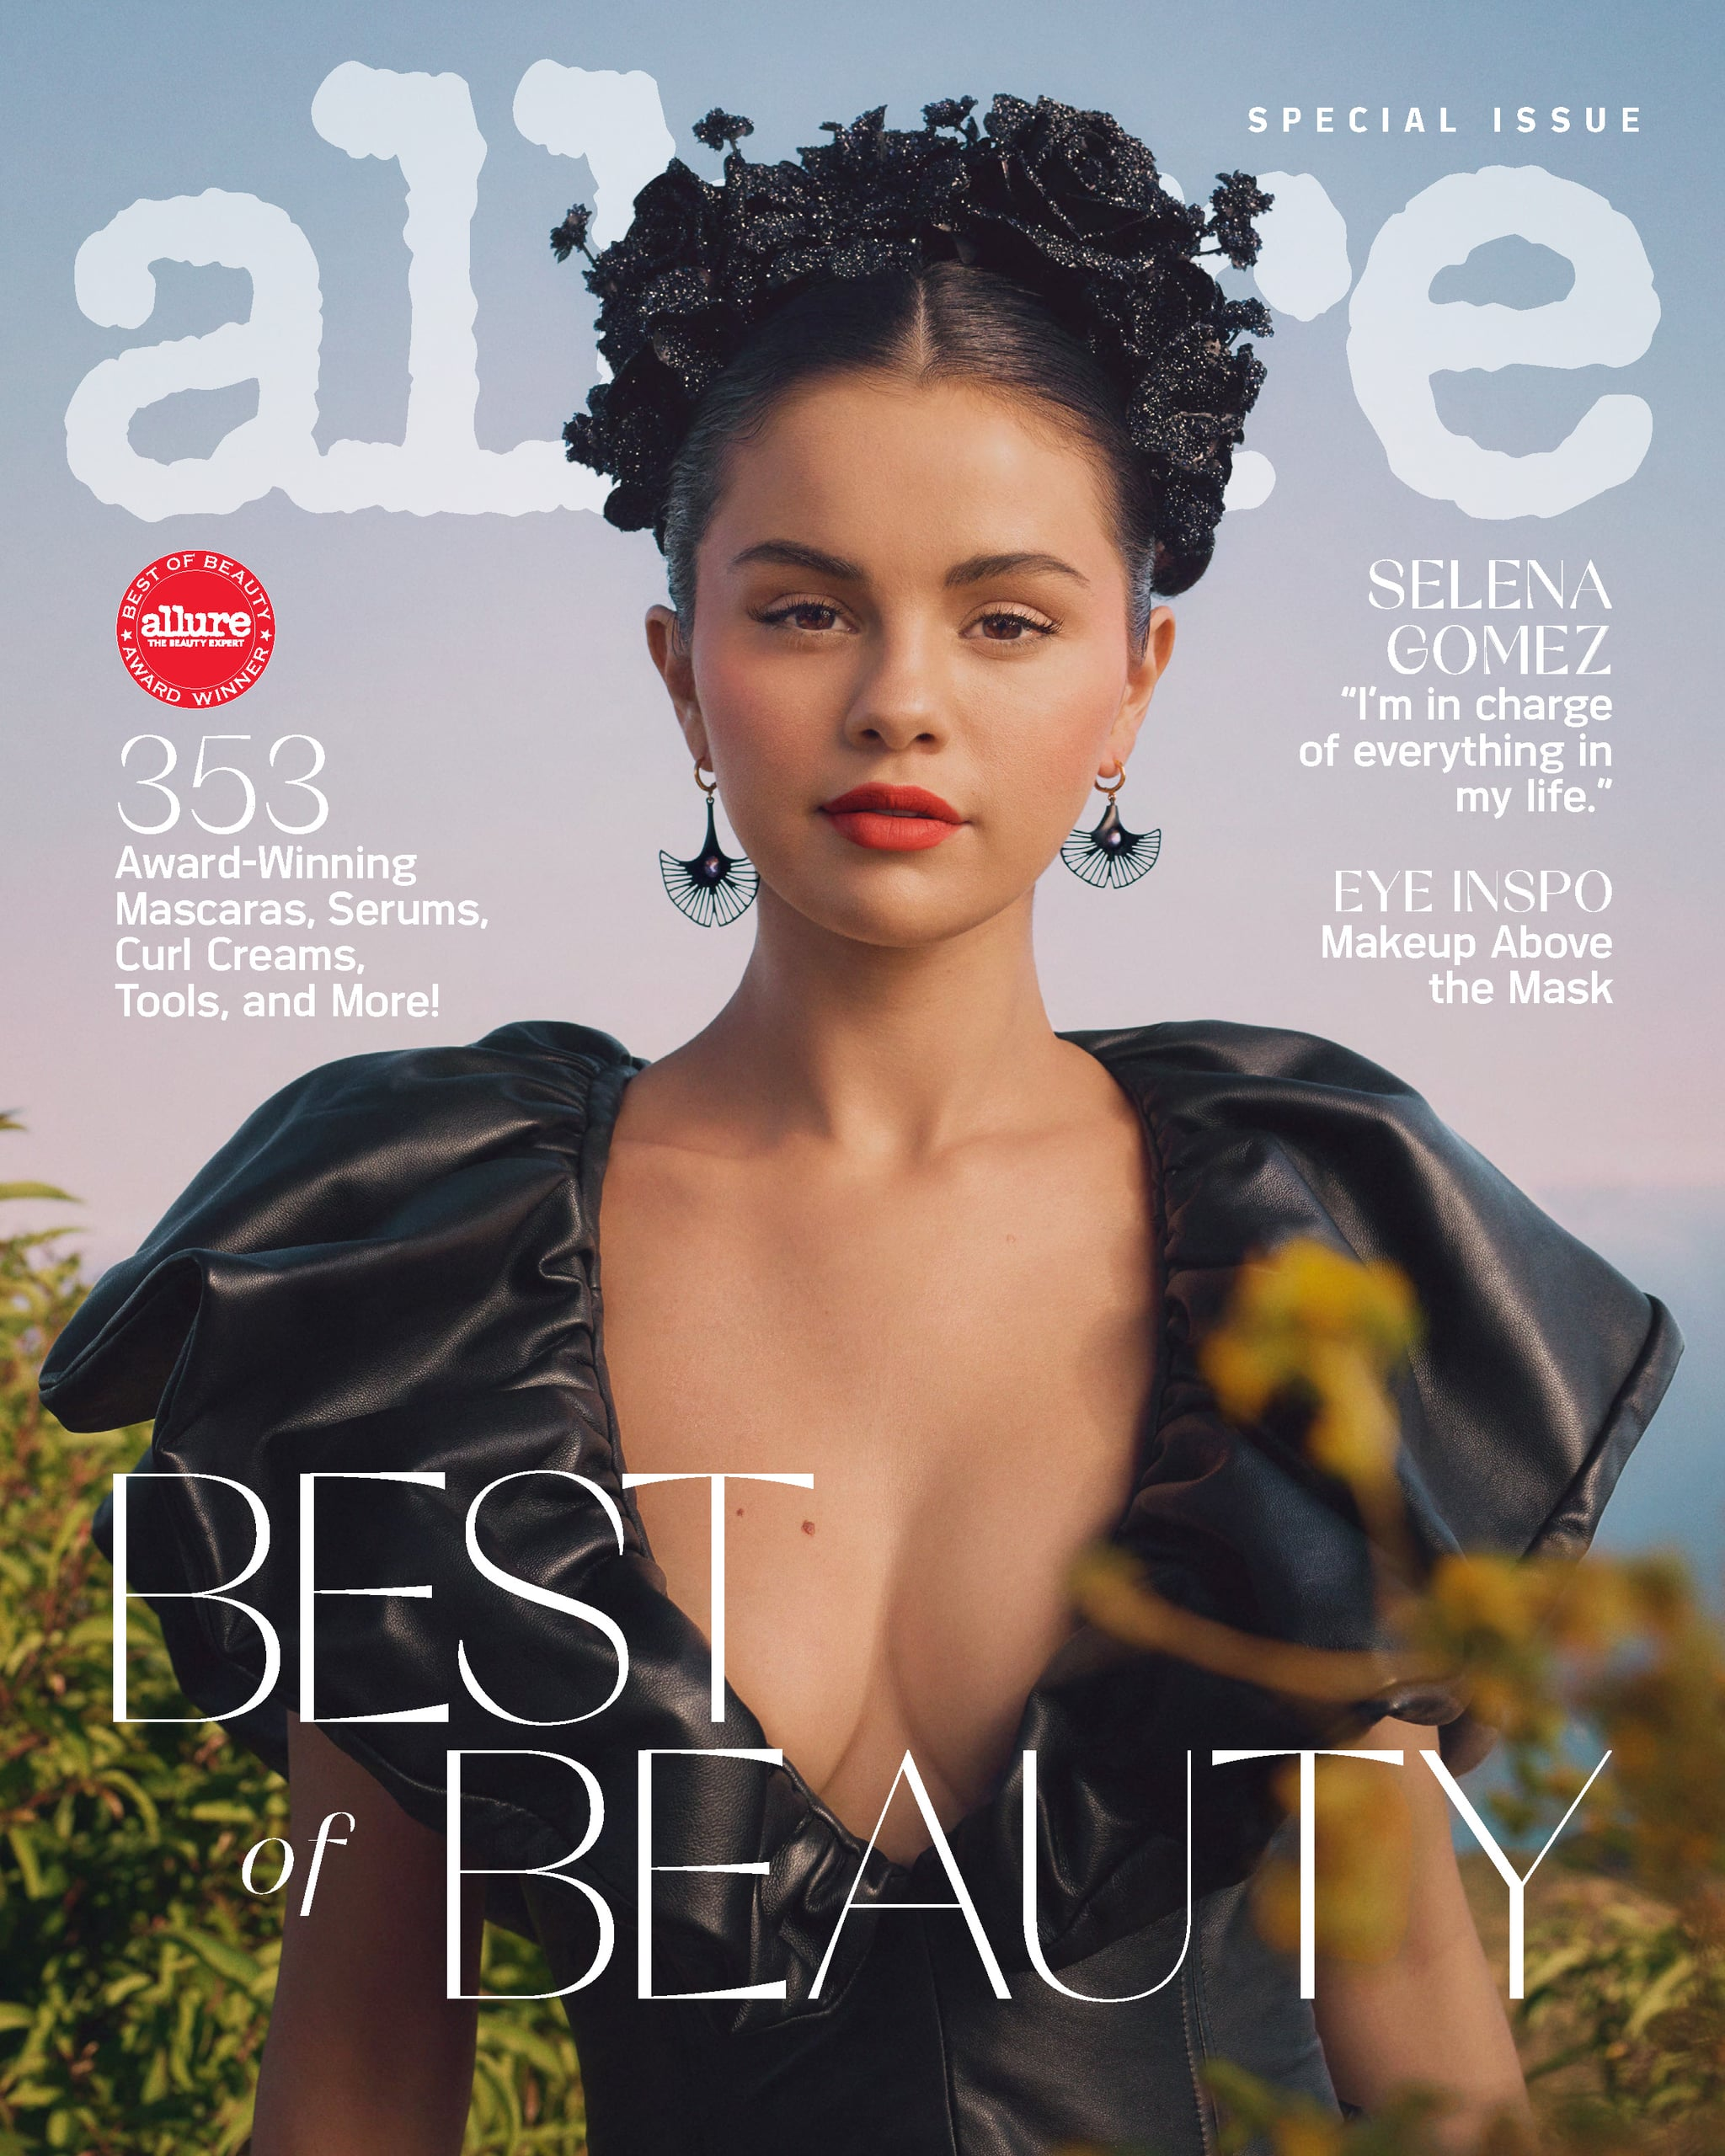 """Selena Gomez said on Miley Cyrus's Bright Minded show back in April that she's gone to treatment a few times for anxiety and depression, """"and for other stuff that I'd been struggling with"""" — and during one of those times at McLean Hospital, she was diagnosed with bipolar disorder. Now, in a new interview for Allure's October 2020 """"Best of Beauty"""" cover story, Gomez says she's still processing her diagnosis.  """"I have always had so many different emotions and I didn't know how to control them quite well,"""" Gomez stated. """"It was complicated. But I think I'm happy to understand it."""" Learning more about bipolar disorder, which affects 2.8 percent of Americans (about 5.7 million people), has actually helped her.  """"Once I did find out more about who I was, I was proud,"""" Gomez explained. """"I also felt comfortable knowing that I wasn't alone, and I was going to get through it. So I will always be passionate about that. It's something I will continue to talk about.""""  At McLean Hospital back in 2019, Gomez accepted an award for her mental health advocacy. She said that it took intense work on herself and with the guidance of professionals, but she is healthier, happier, and """"in control"""" of her emotions and thoughts more than ever before. """"I think that we are better when we tell the truth,"""" she stated at the time, """"and so this is my truth."""""""